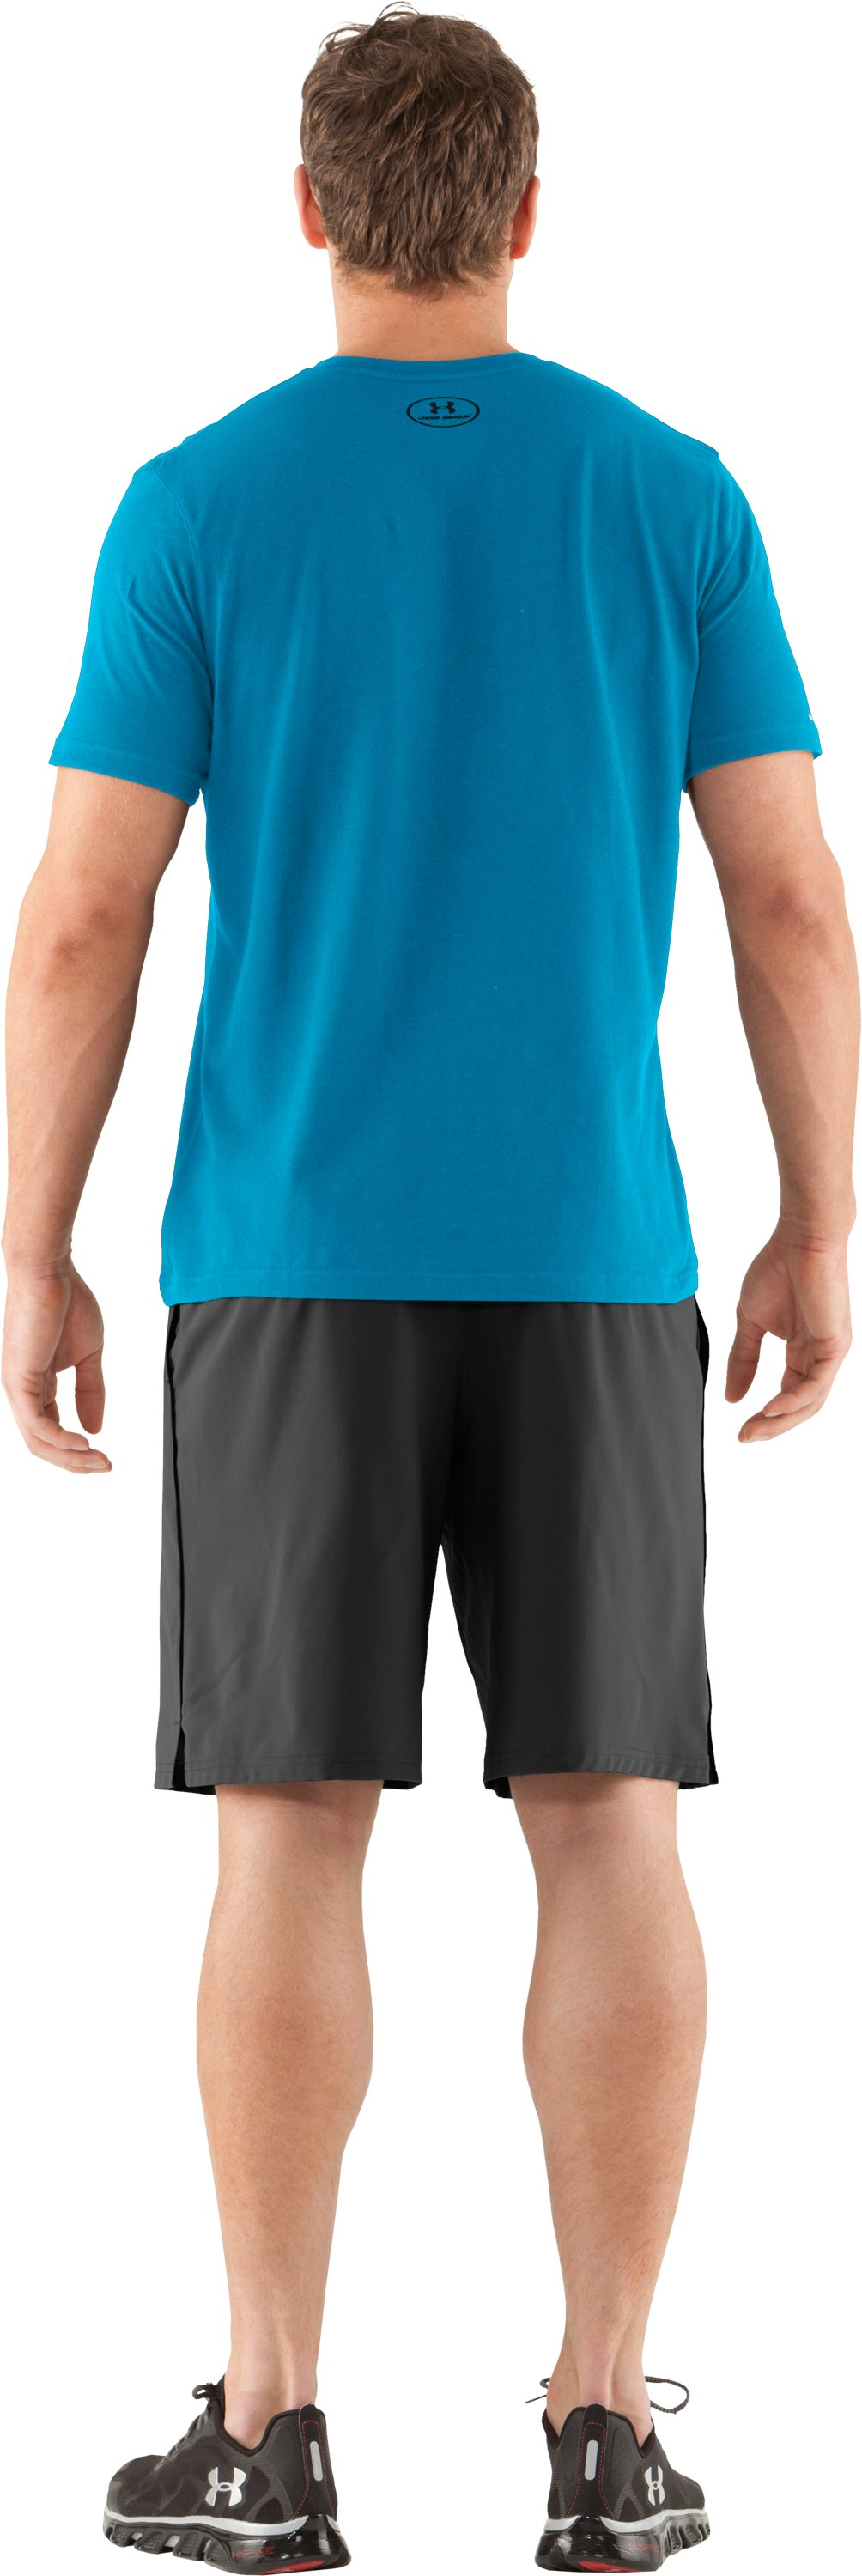 Men's Charged Cotton® T-Shirt, SNORKEL, Back